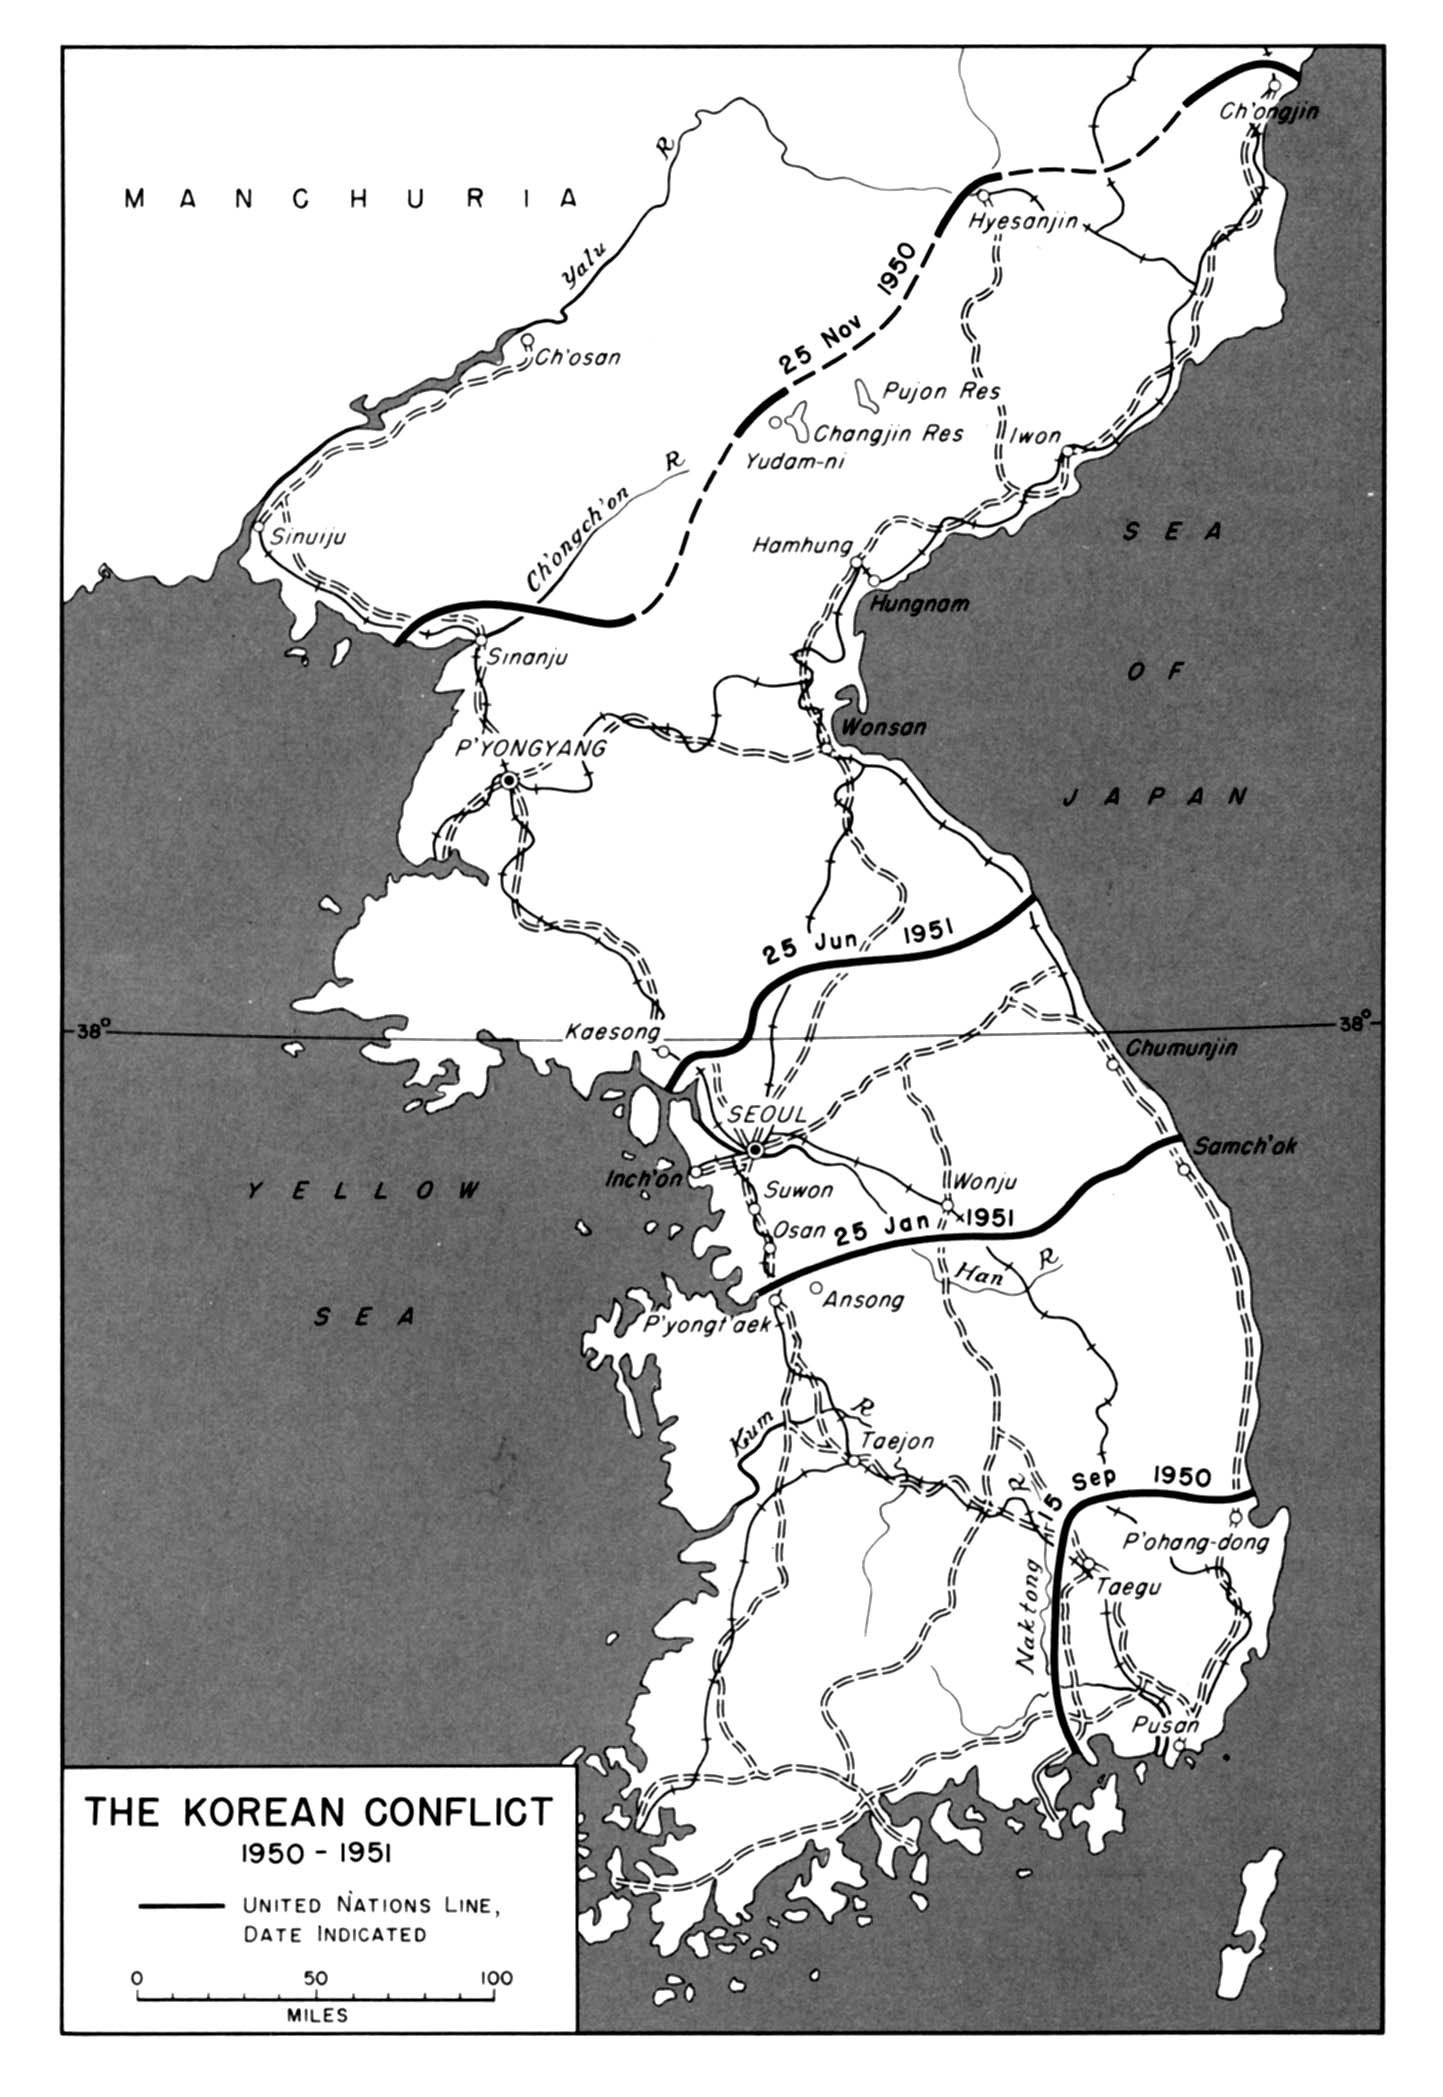 Worksheets Korean War Worksheet chapter 25 map 45 the korean conflict 1950 1951